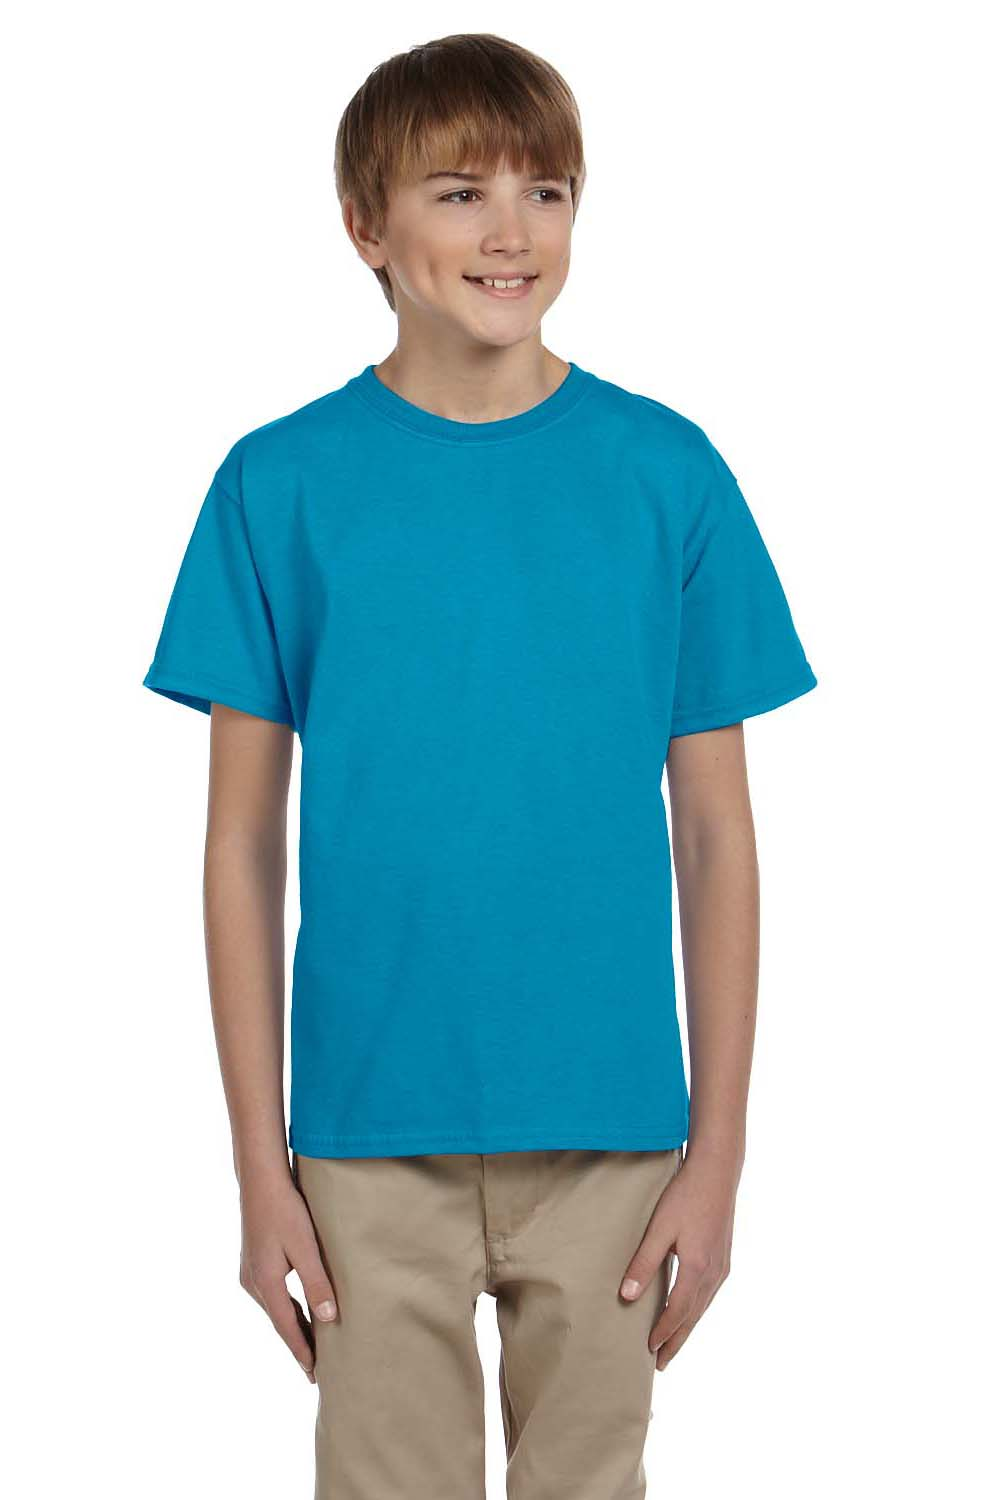 Hanes 5370 Youth EcoSmart Short Sleeve Crewneck T-Shirt Teal Blue Front